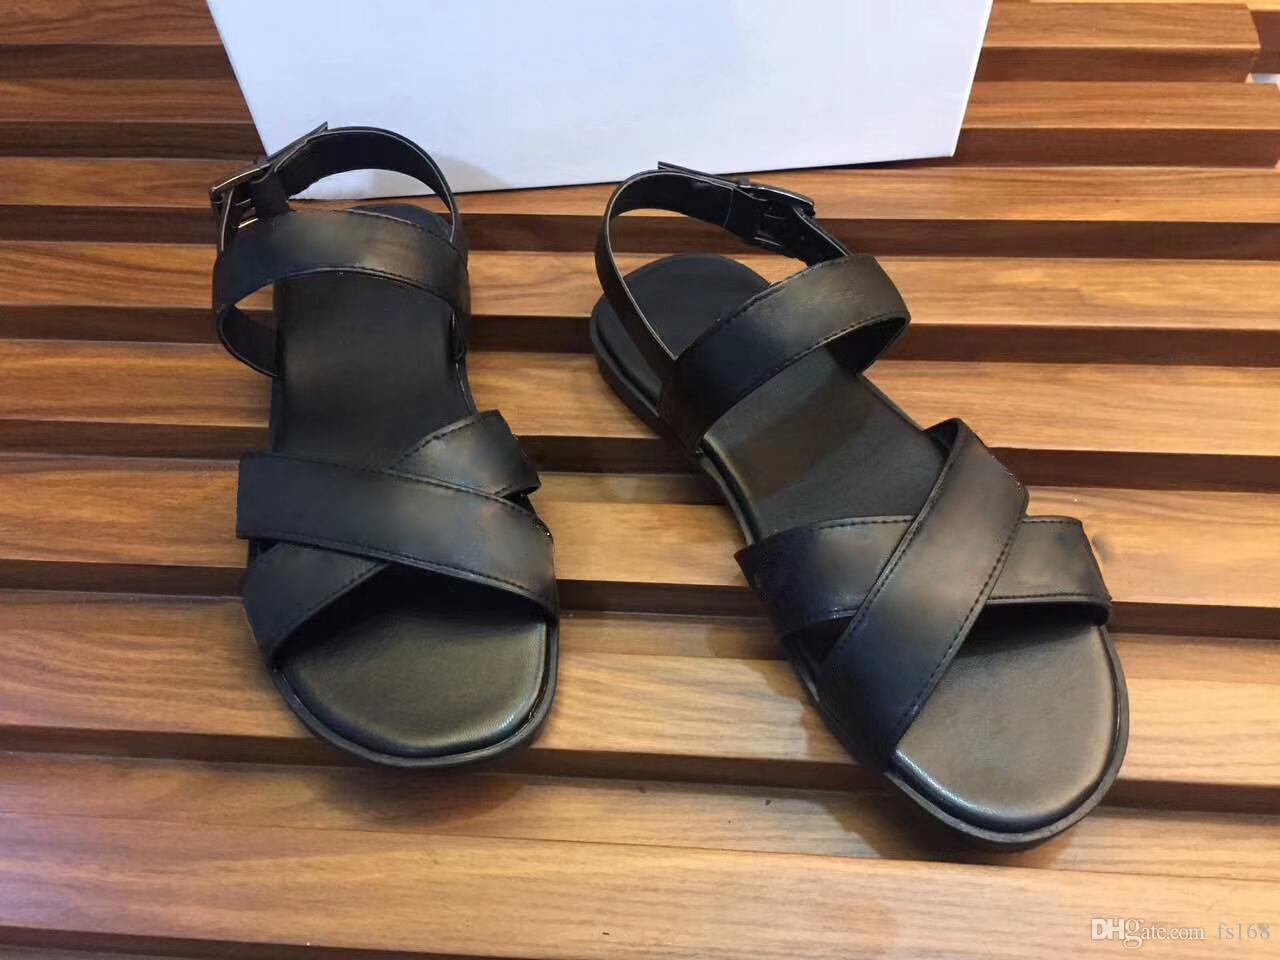 Fashion mens striped sandals sup reme Scuffs causal Non-slip summer huaraches slippers BEST QUALITY Free Delivery for cheap price n7mbEiG